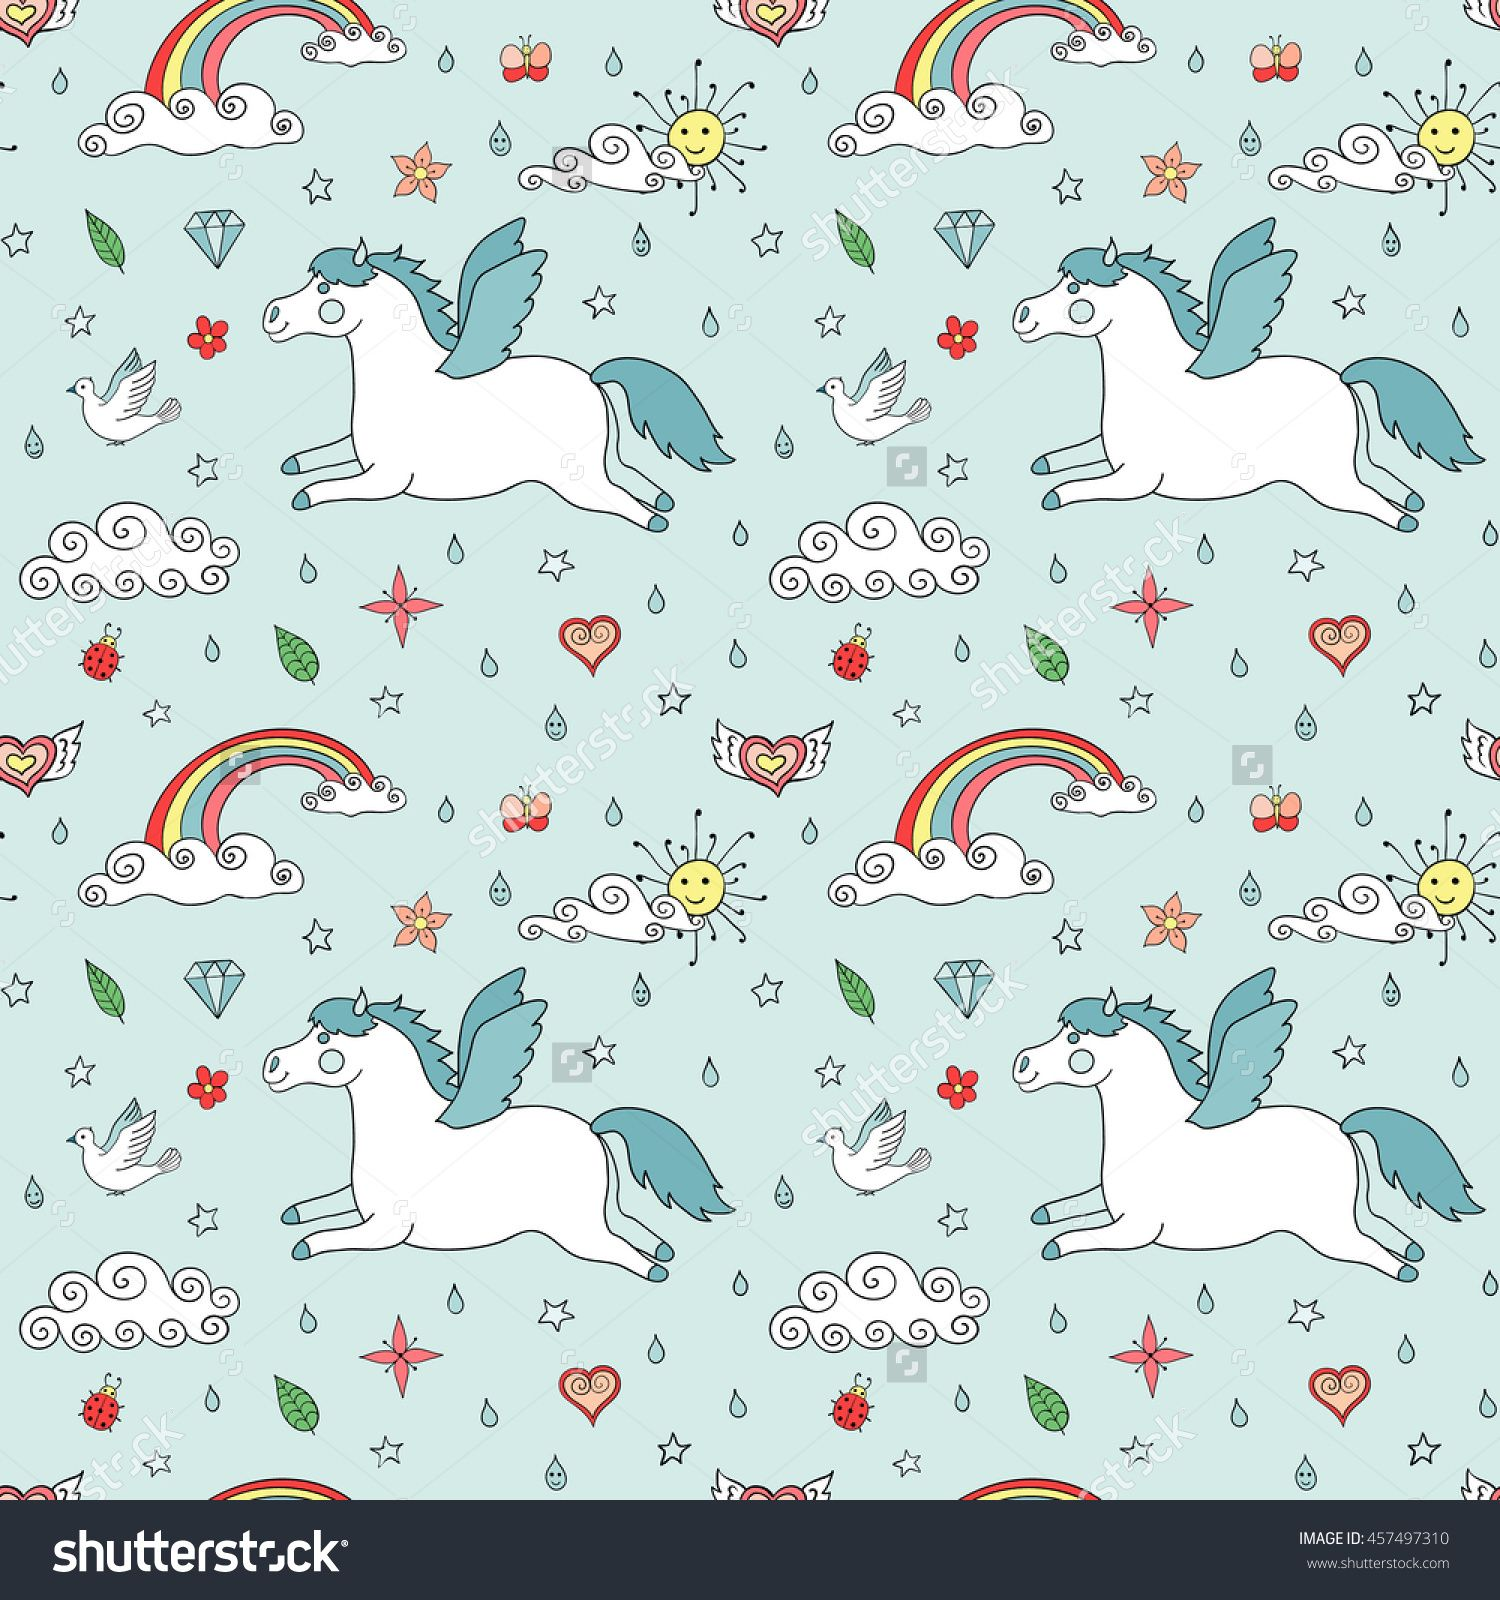 Fantastic Wallpaper Horse Pattern - 21295955b3c6346b2d7662cd7868bb88  Best Photo Reference_206632.jpg